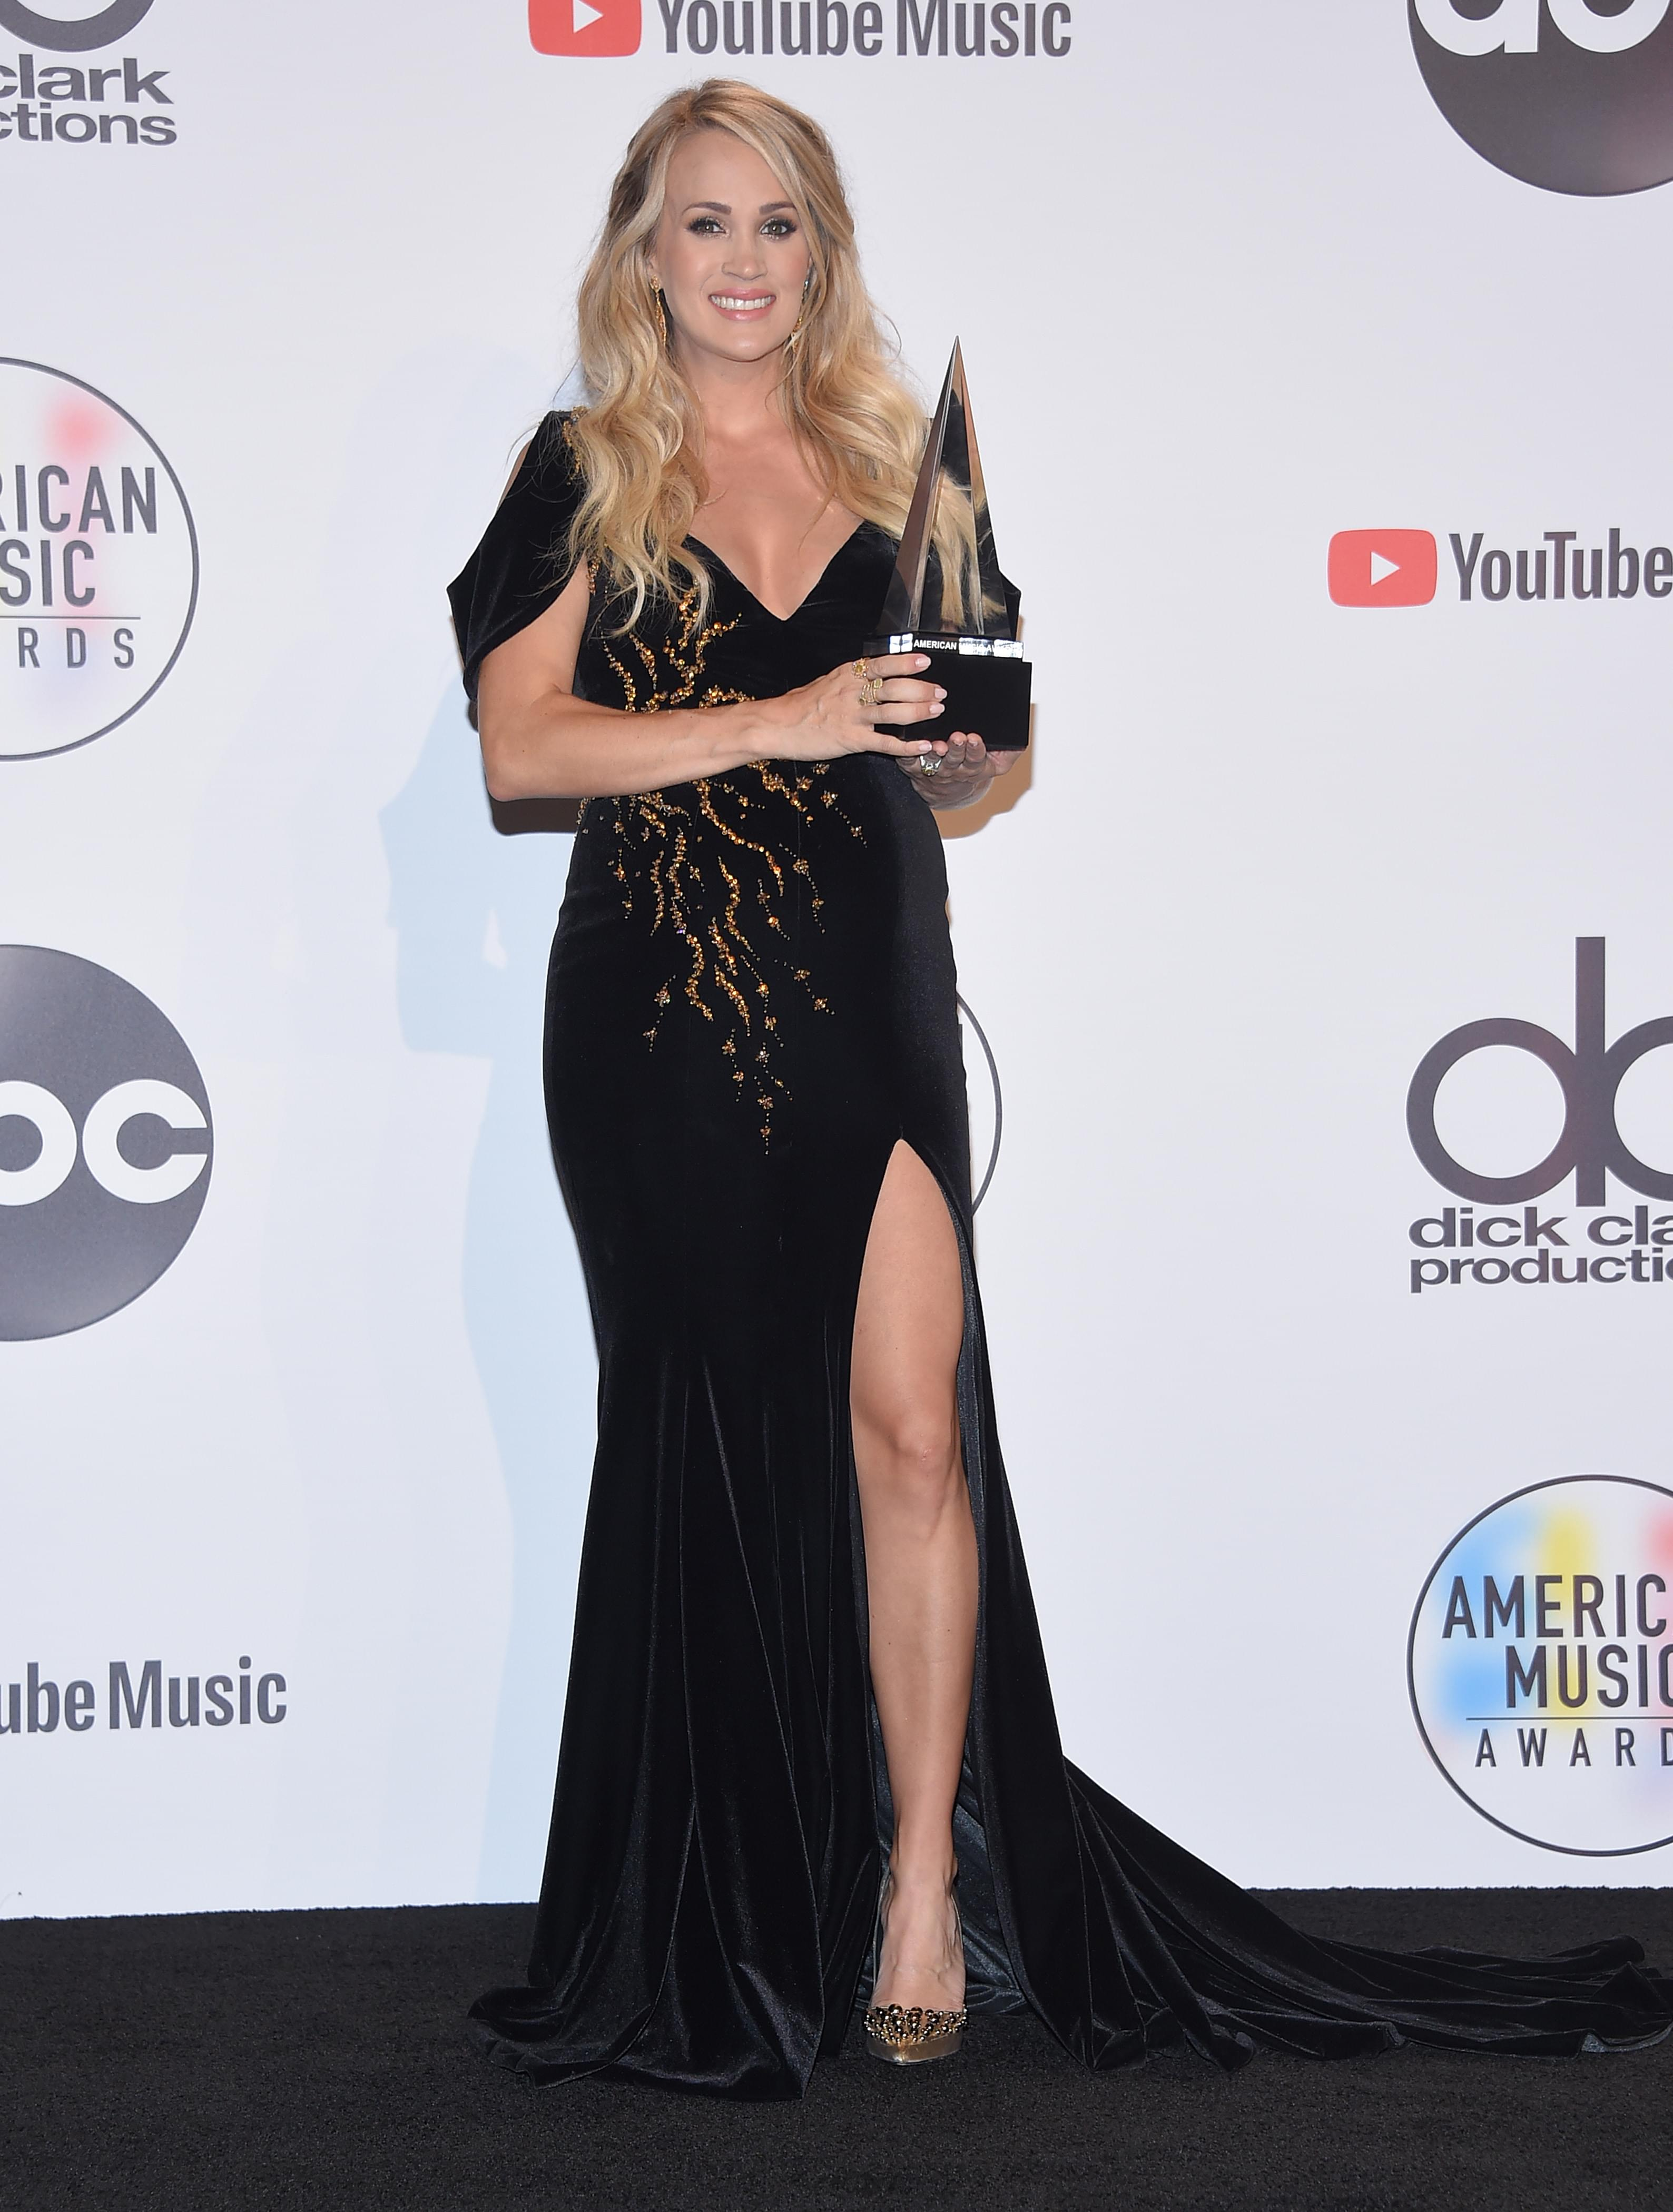 Kane Brown Carrie Underwood And Florida Georgia Line Win